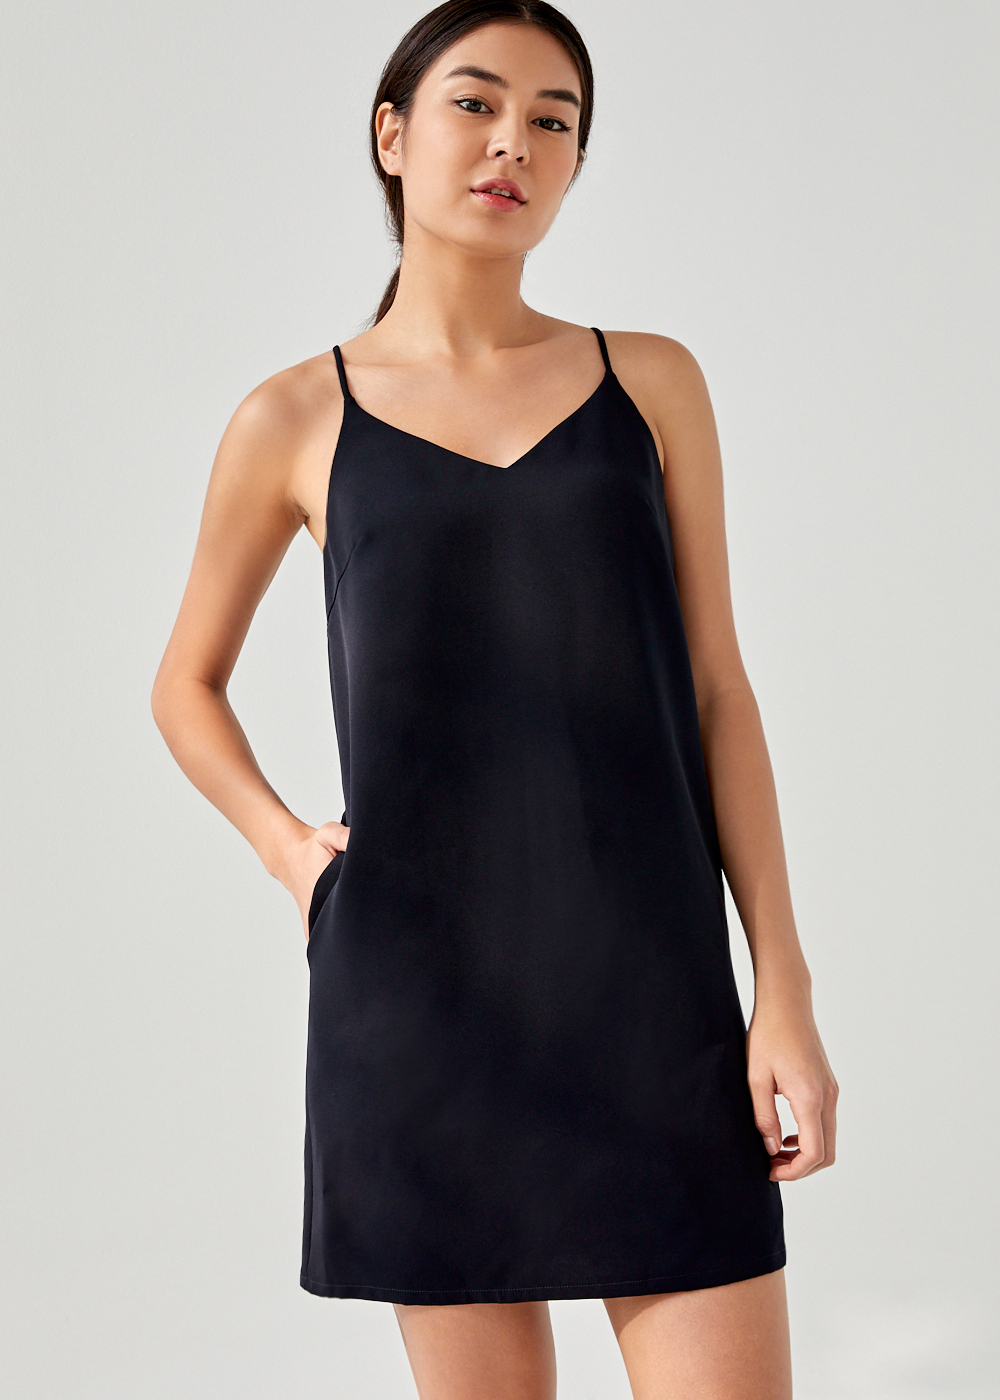 Journi Camisole Shift Dress